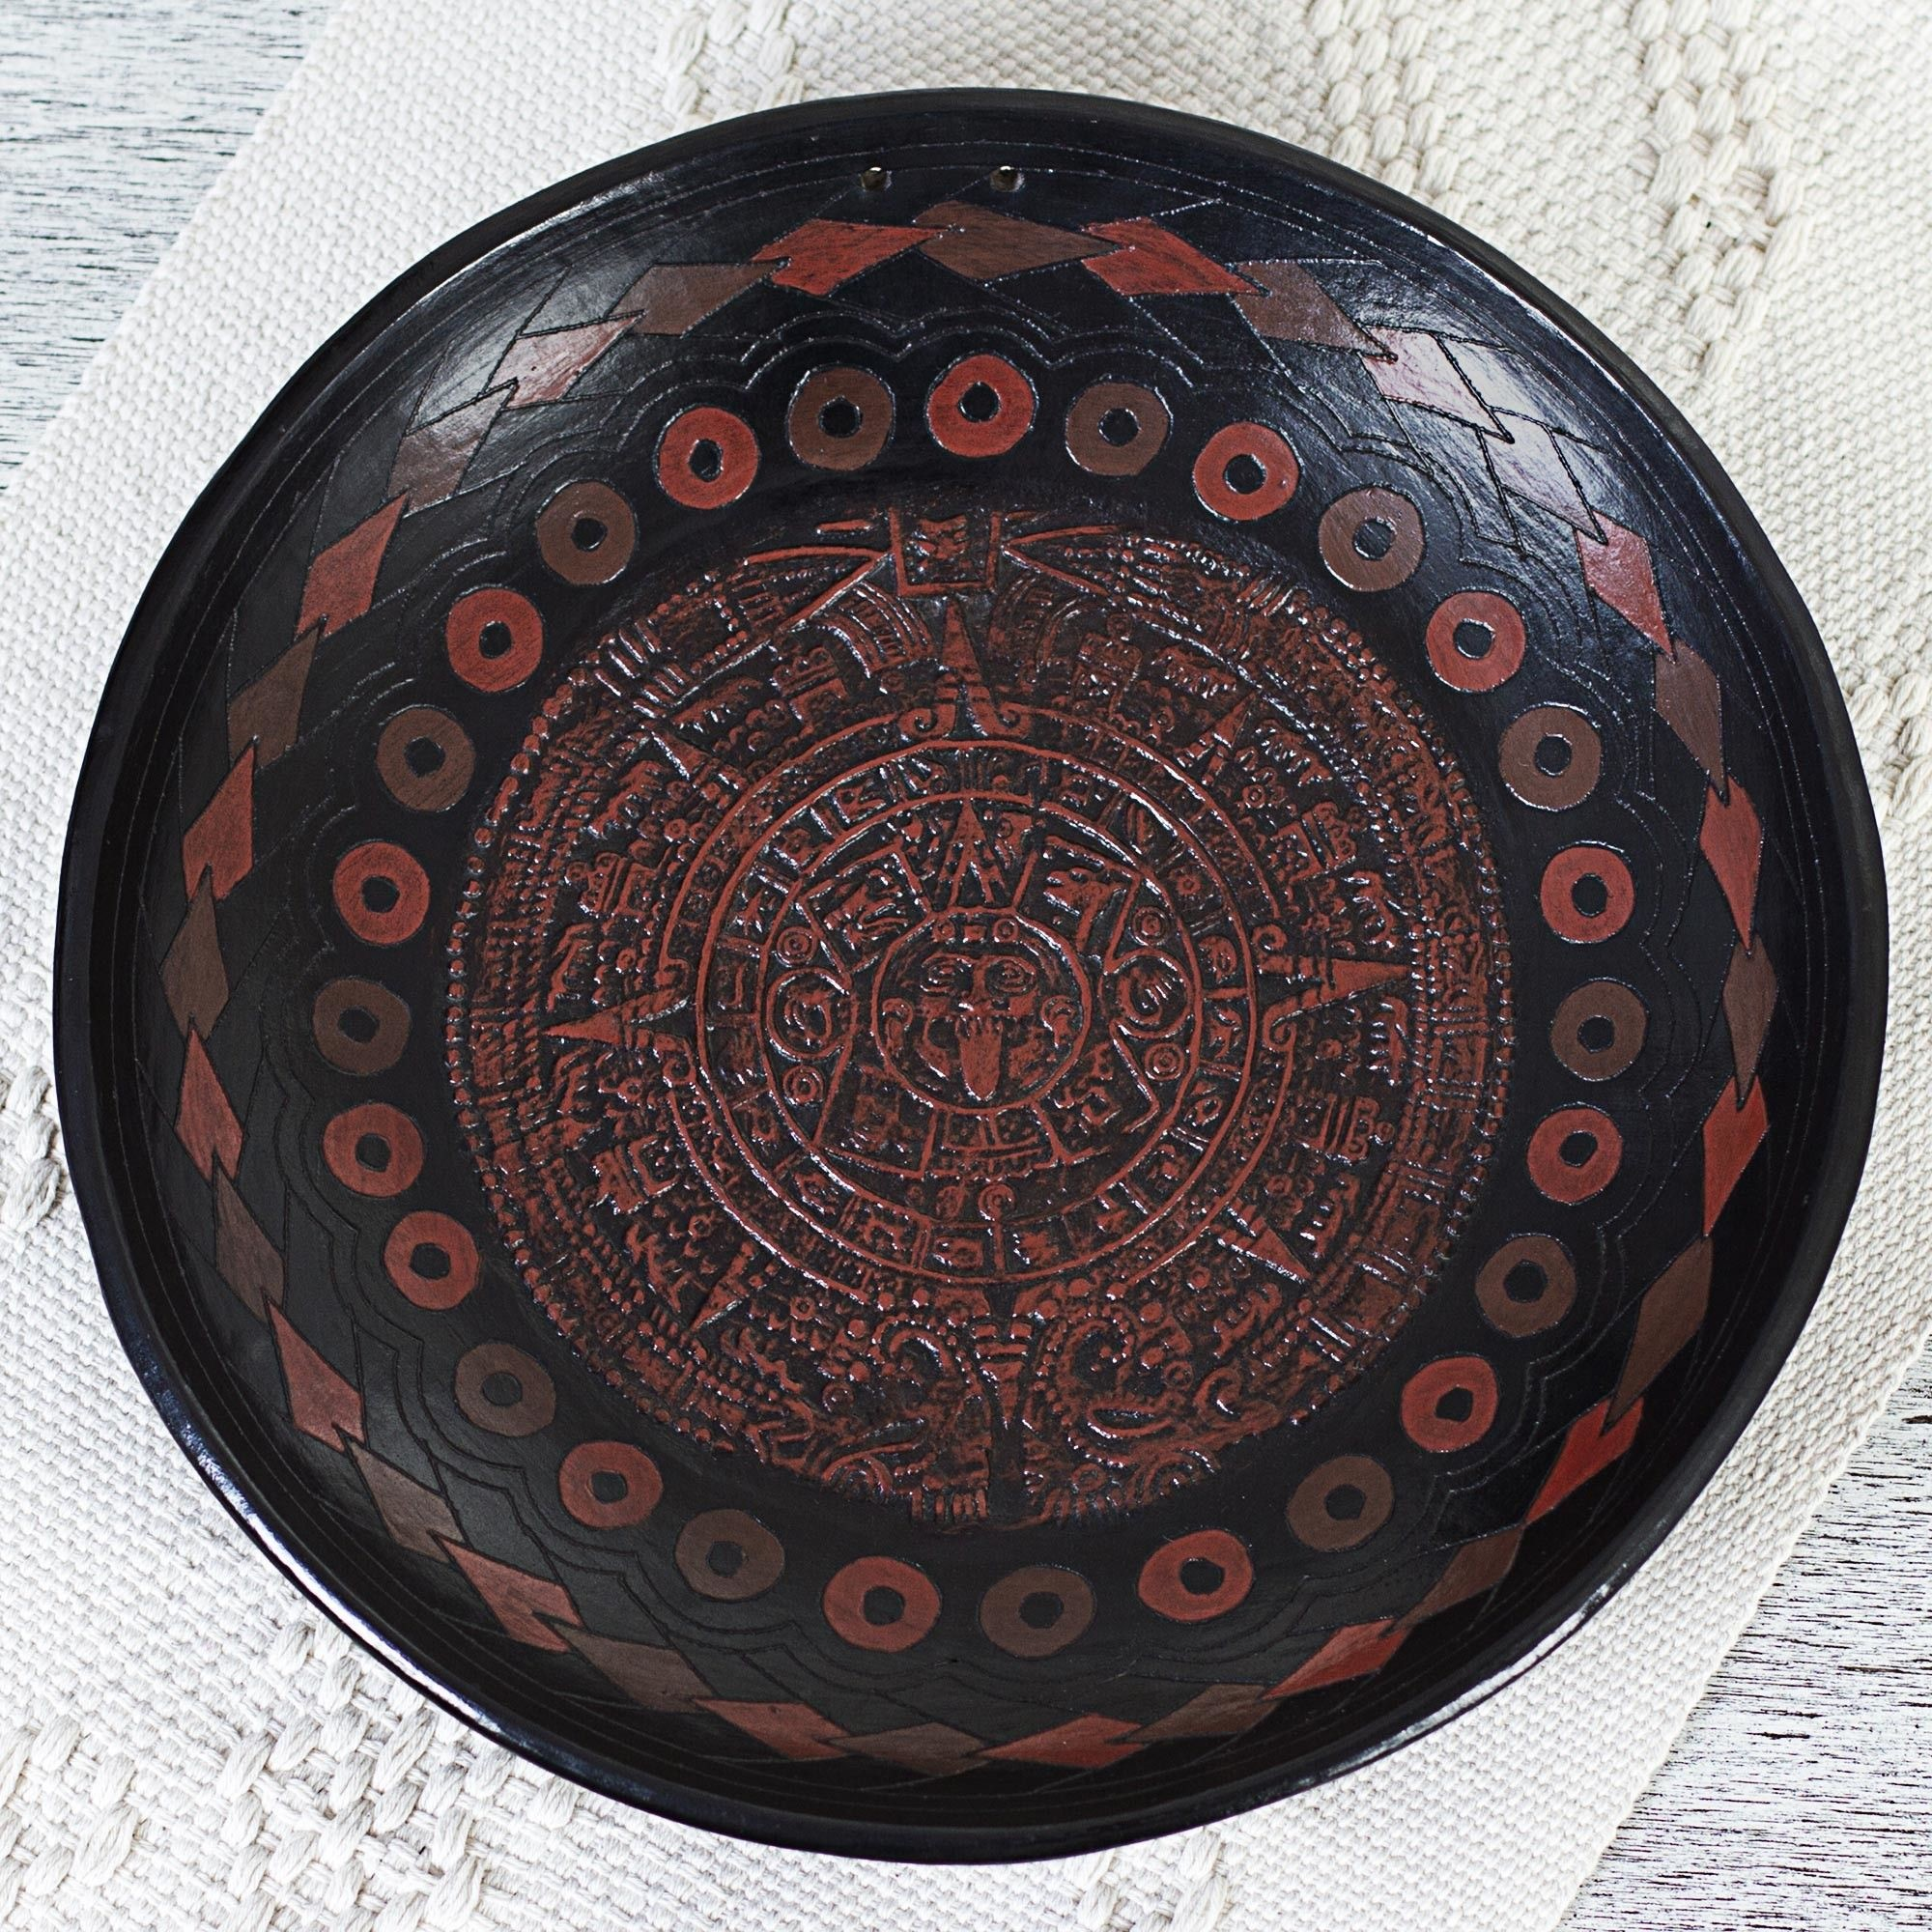 2000x2000 Hand-Crafted Aztec Calendar Ceramic Decorative Plate